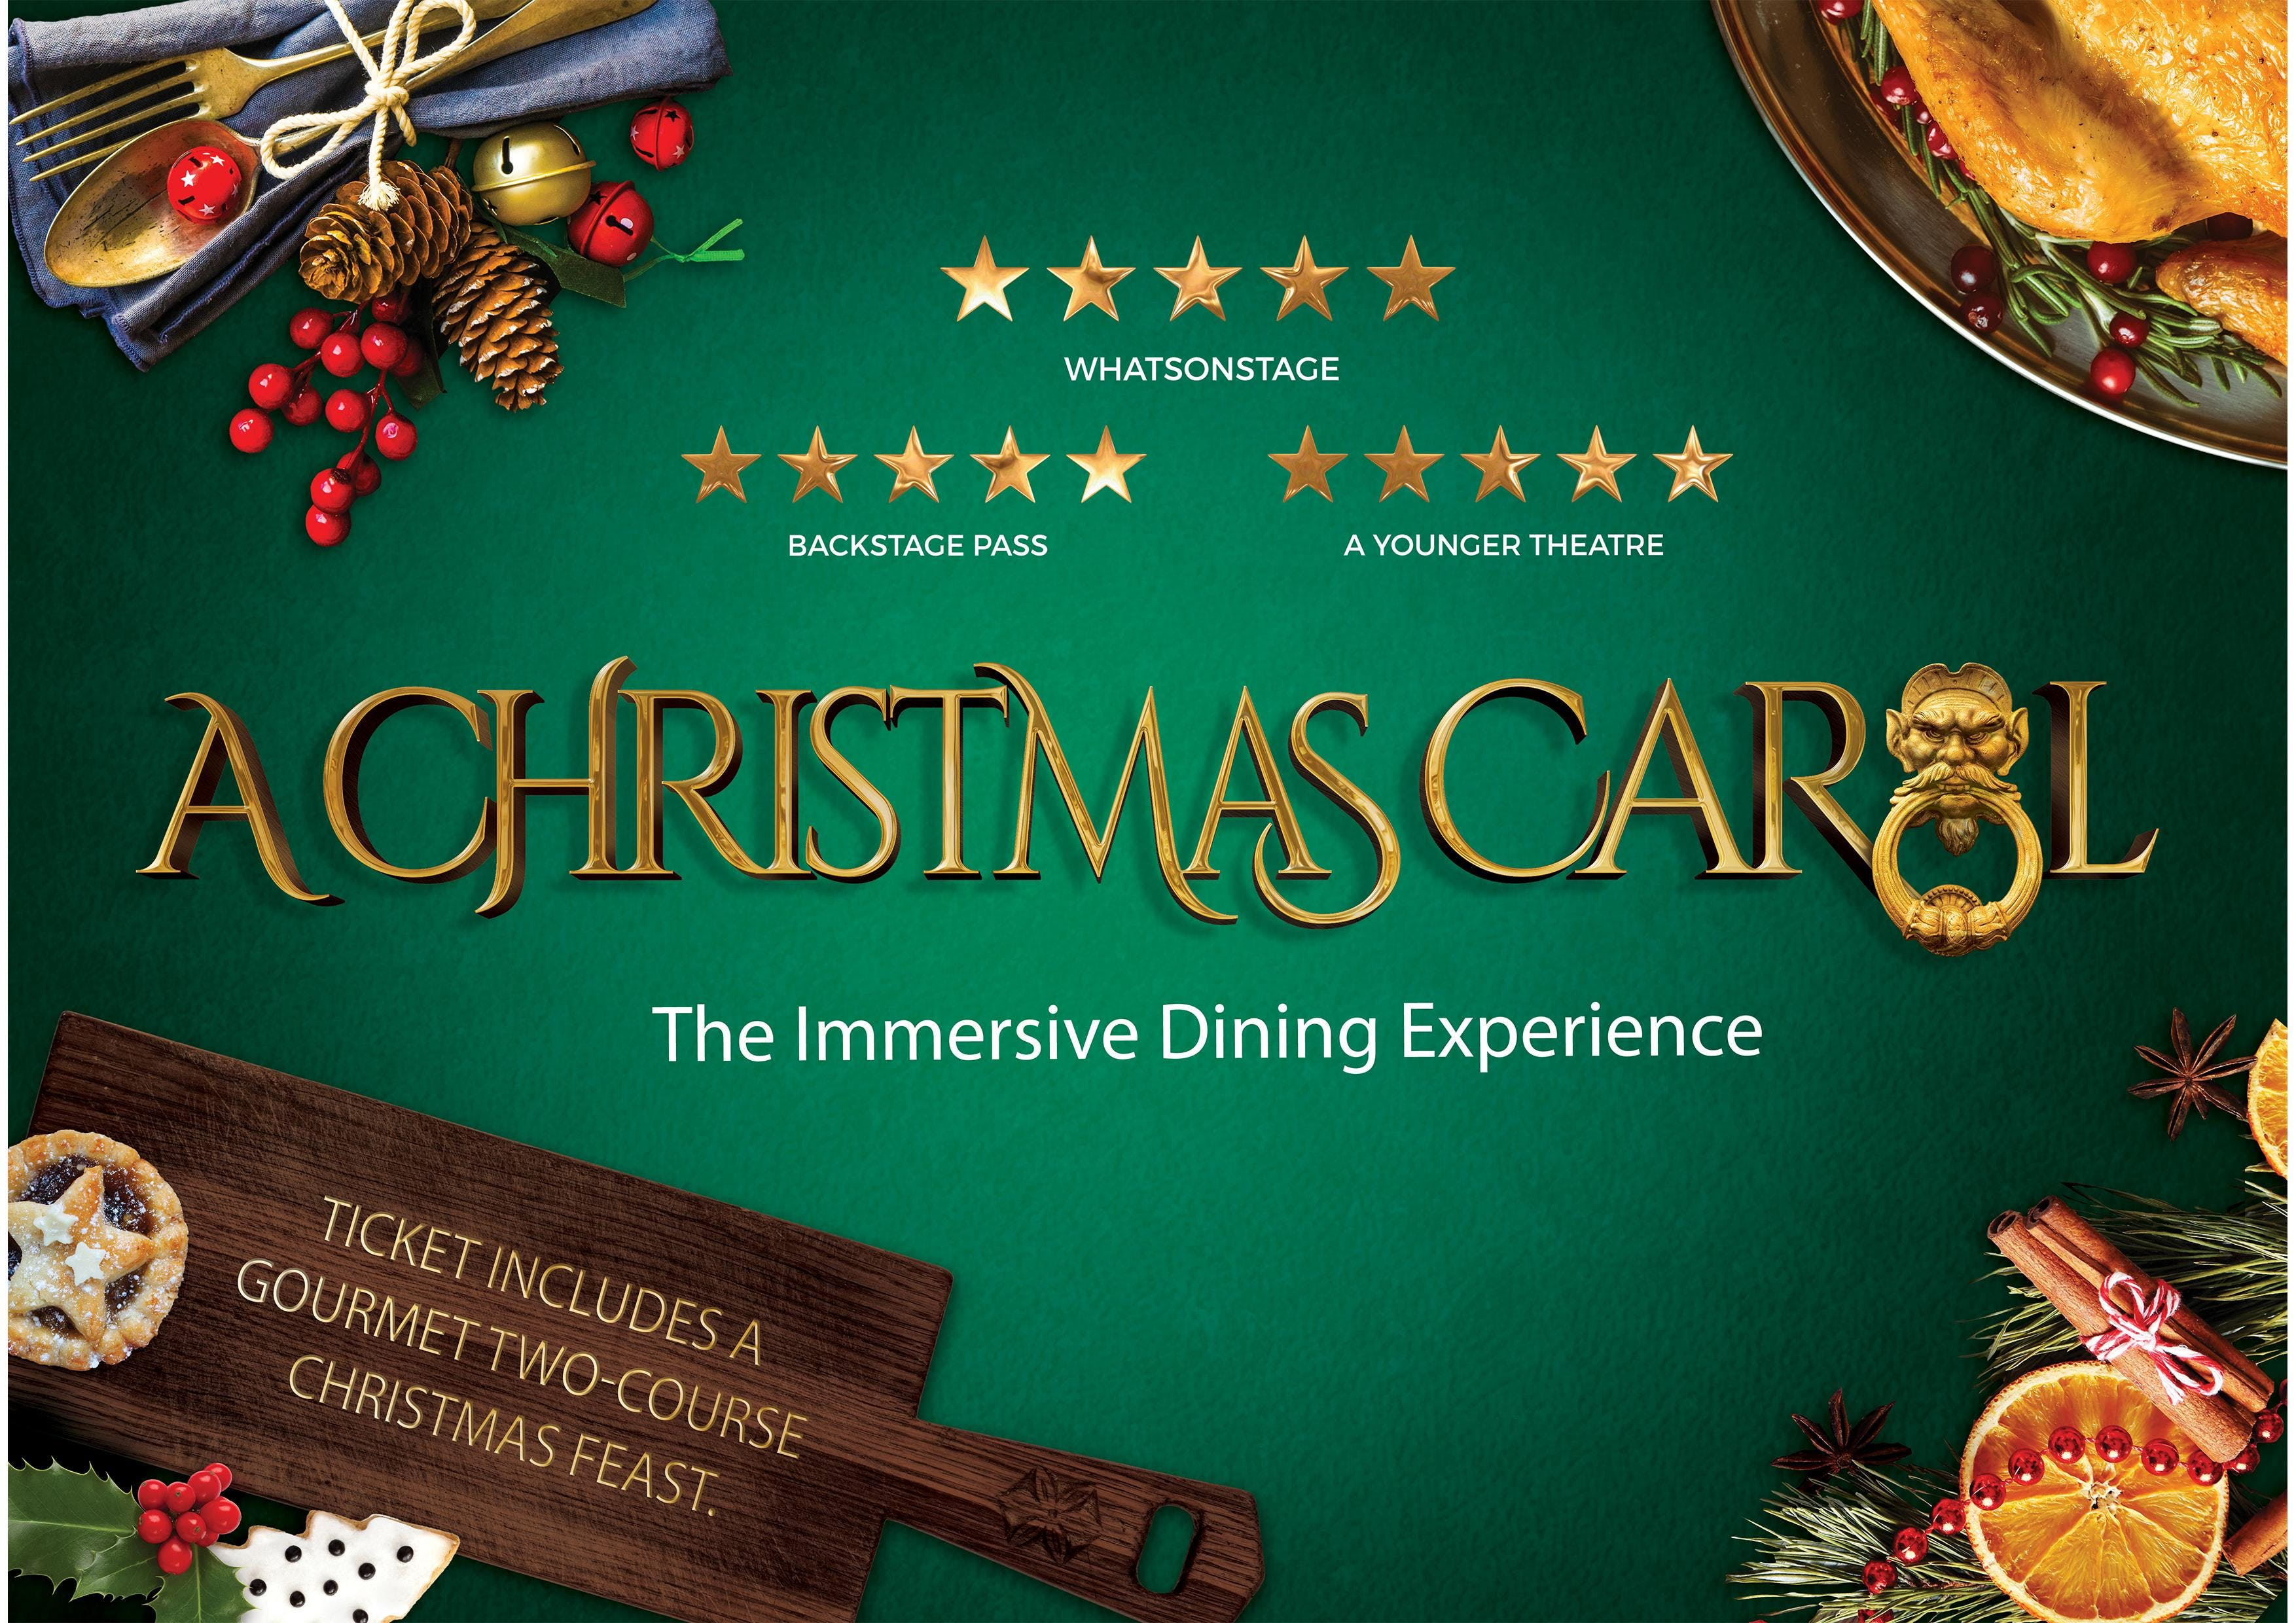 A Christmas Carol- The Immersive Dining Exper